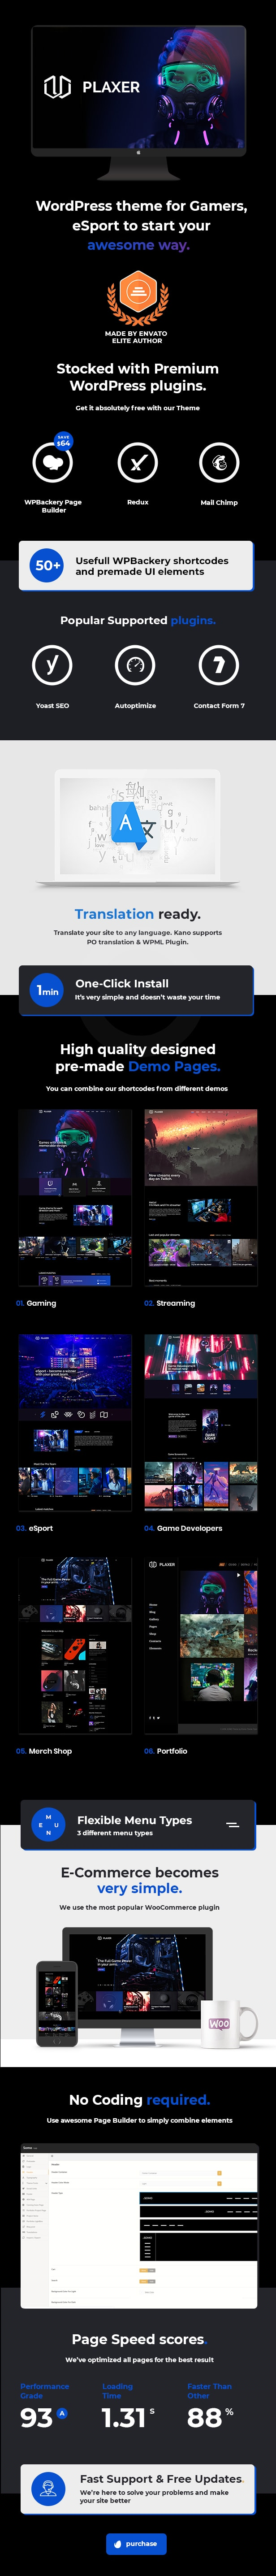 Plaxer - Gaming and eSports WordPress Theme - 4